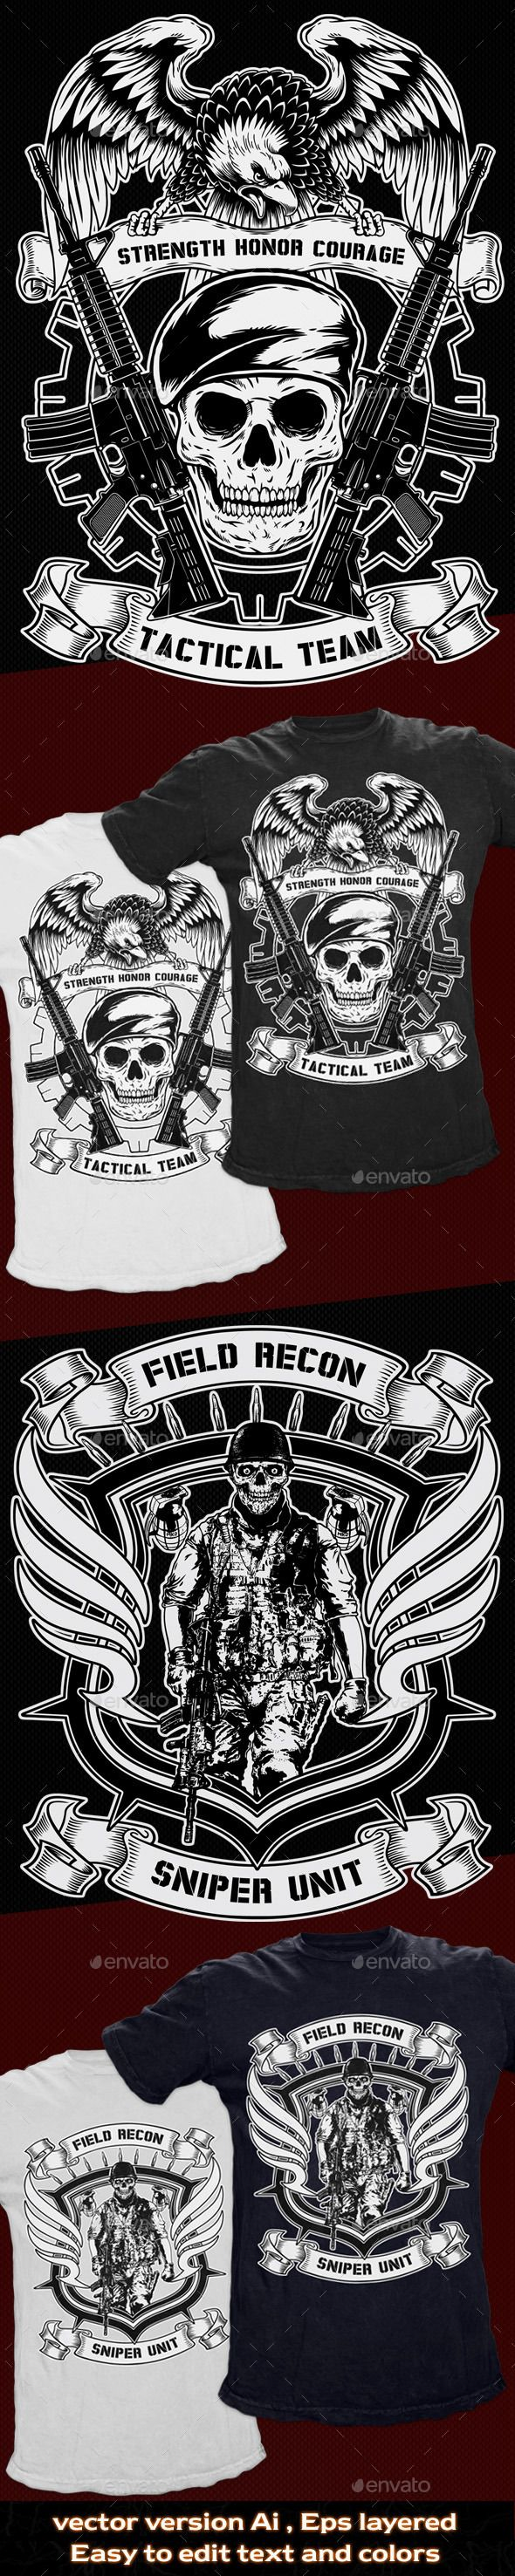 2 #T-Shirt #Template Military #Theme - T-Shirts Download here: https://graphicriver.net/item/2-tshirt-template-military-theme/10875824?ref=alena994